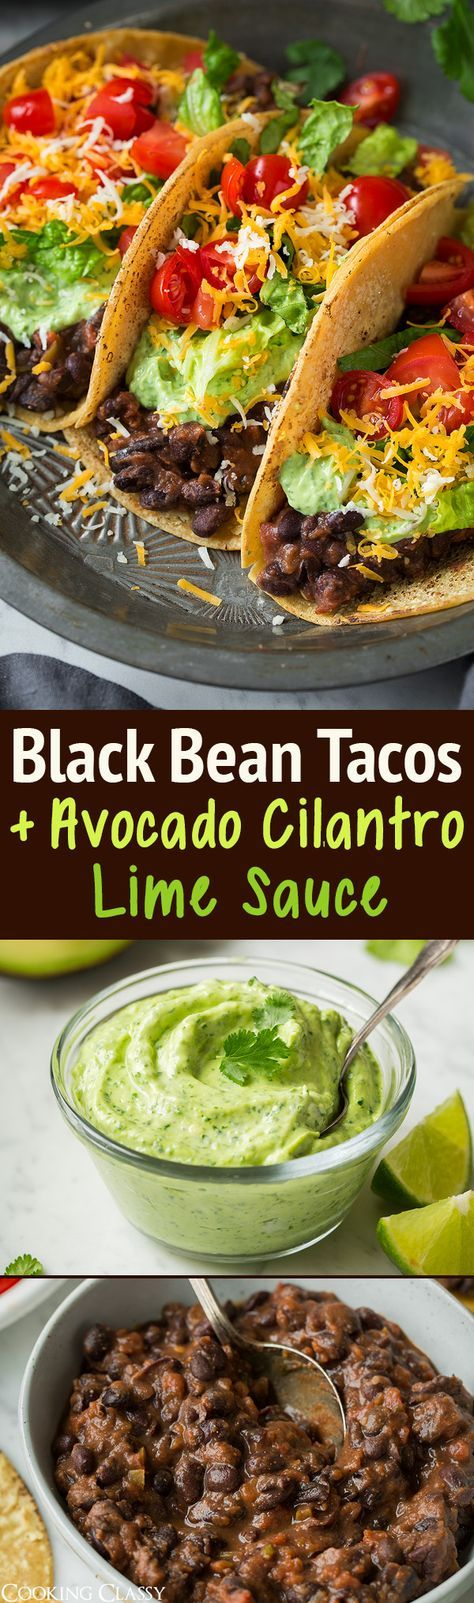 Black Bean Tacos with Avocado Cilantro Lime Crema - Cooking Classy